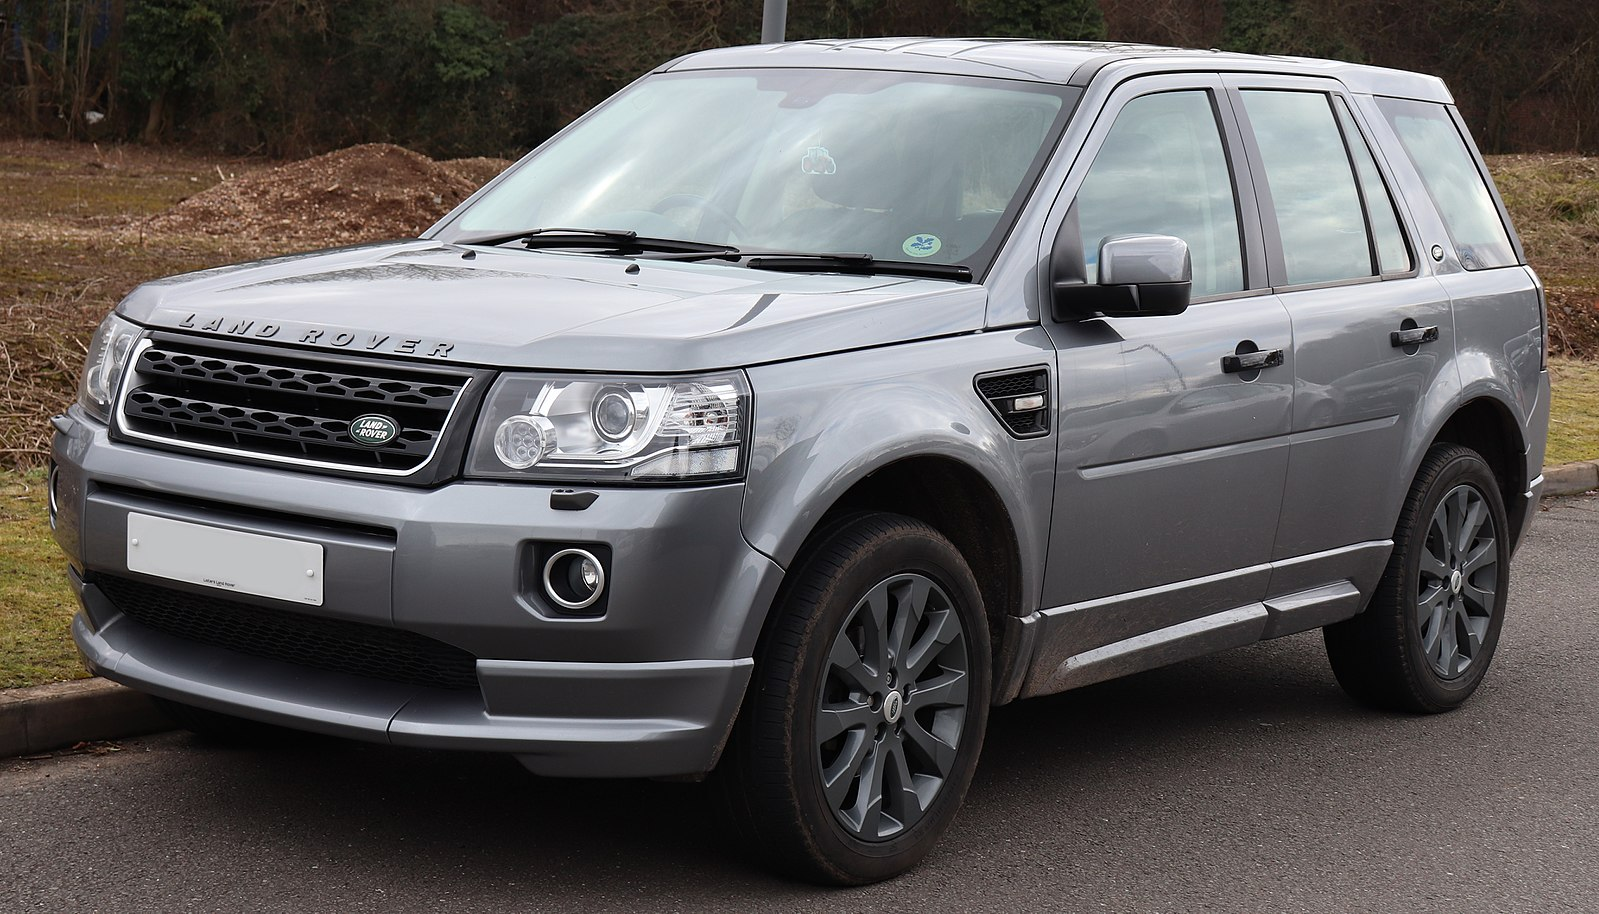 Difference Between Land Rover and Range Rover